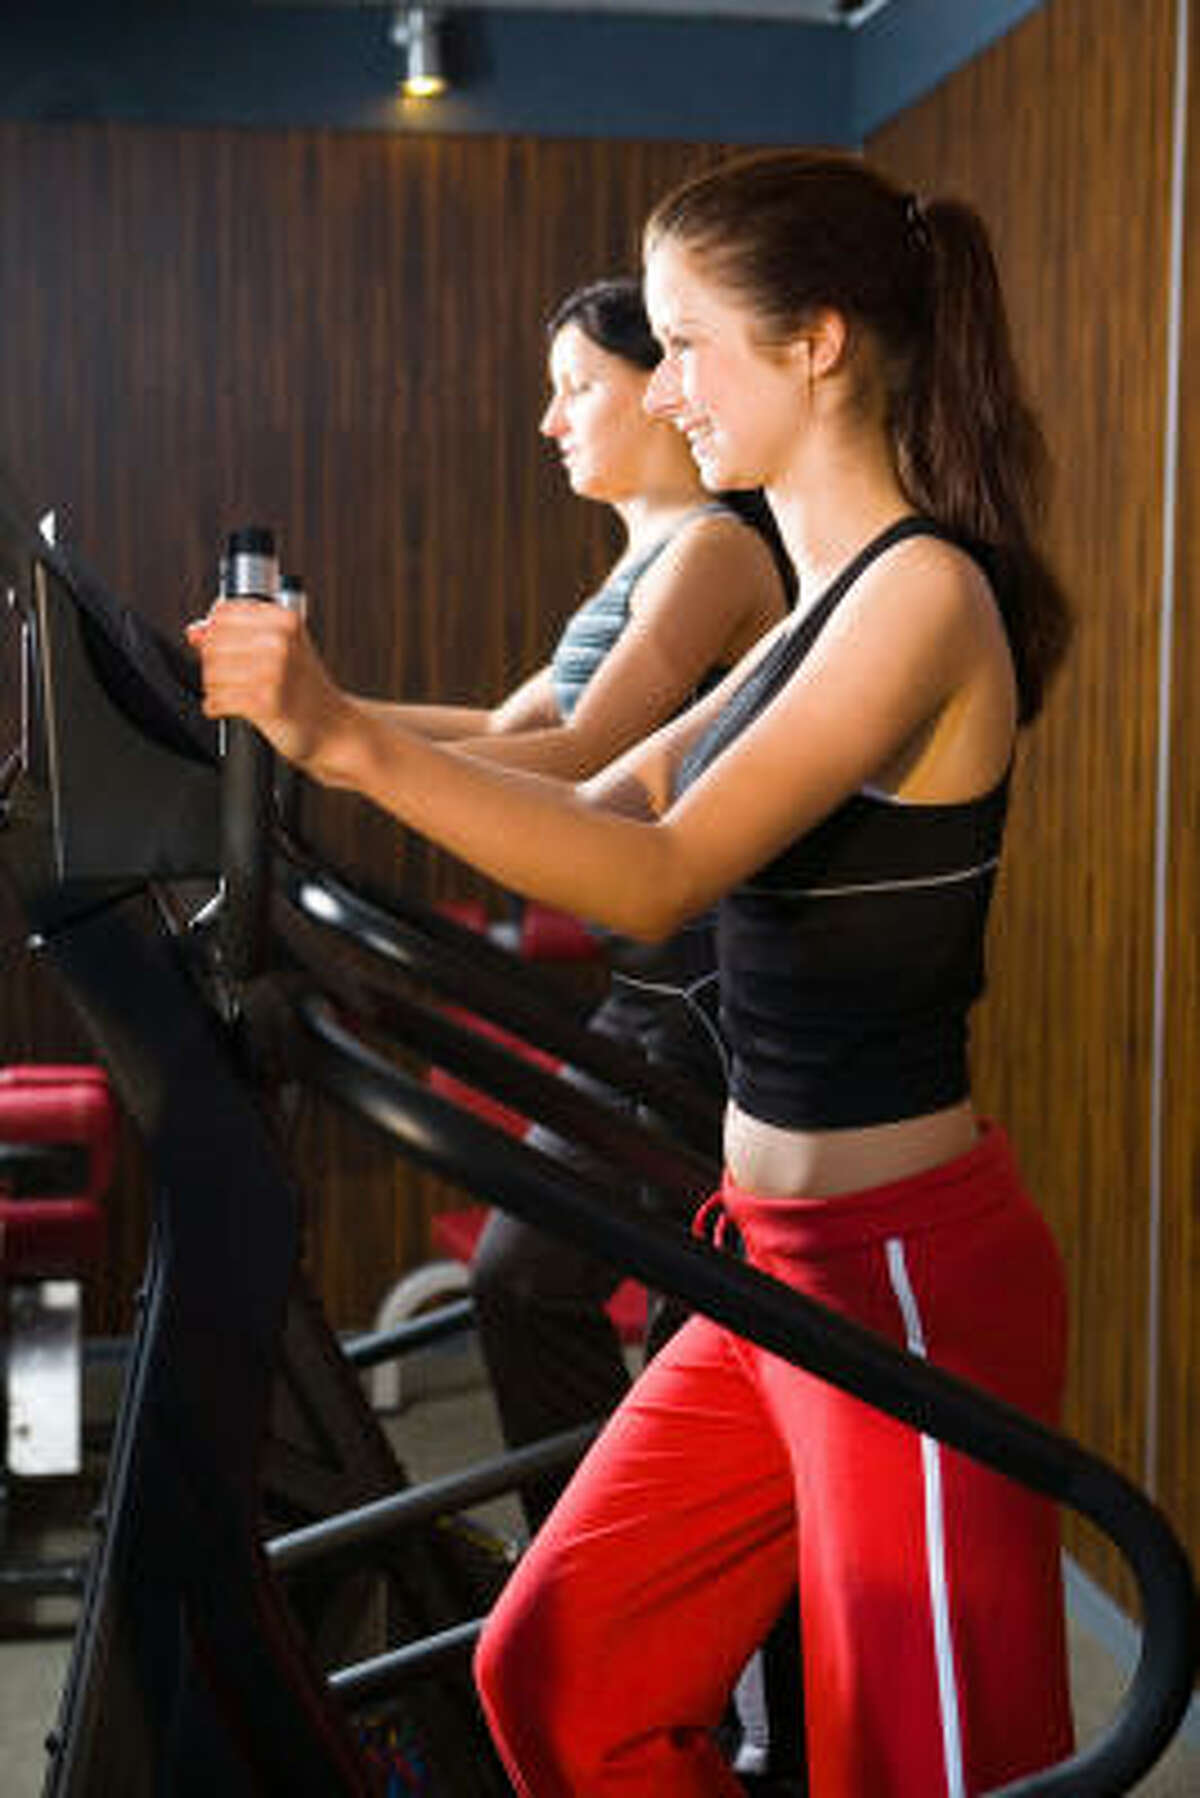 EXERCISE HELPS: Make a regular workout part of a daily job-search routine.